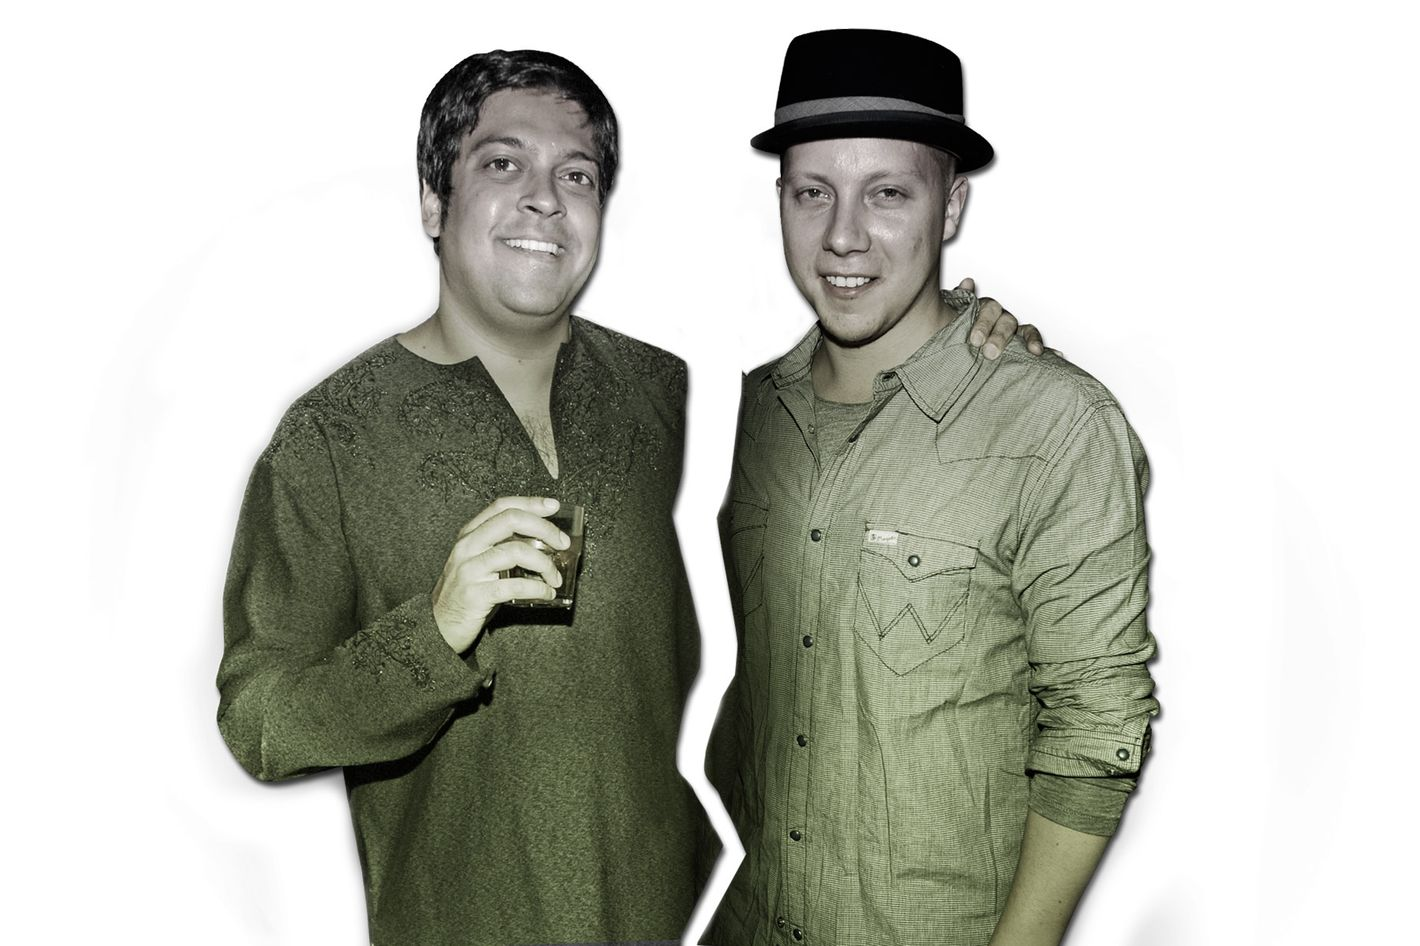 Michael Shah (left) and Matt Levine, former partners who are now locked in a legal battle.